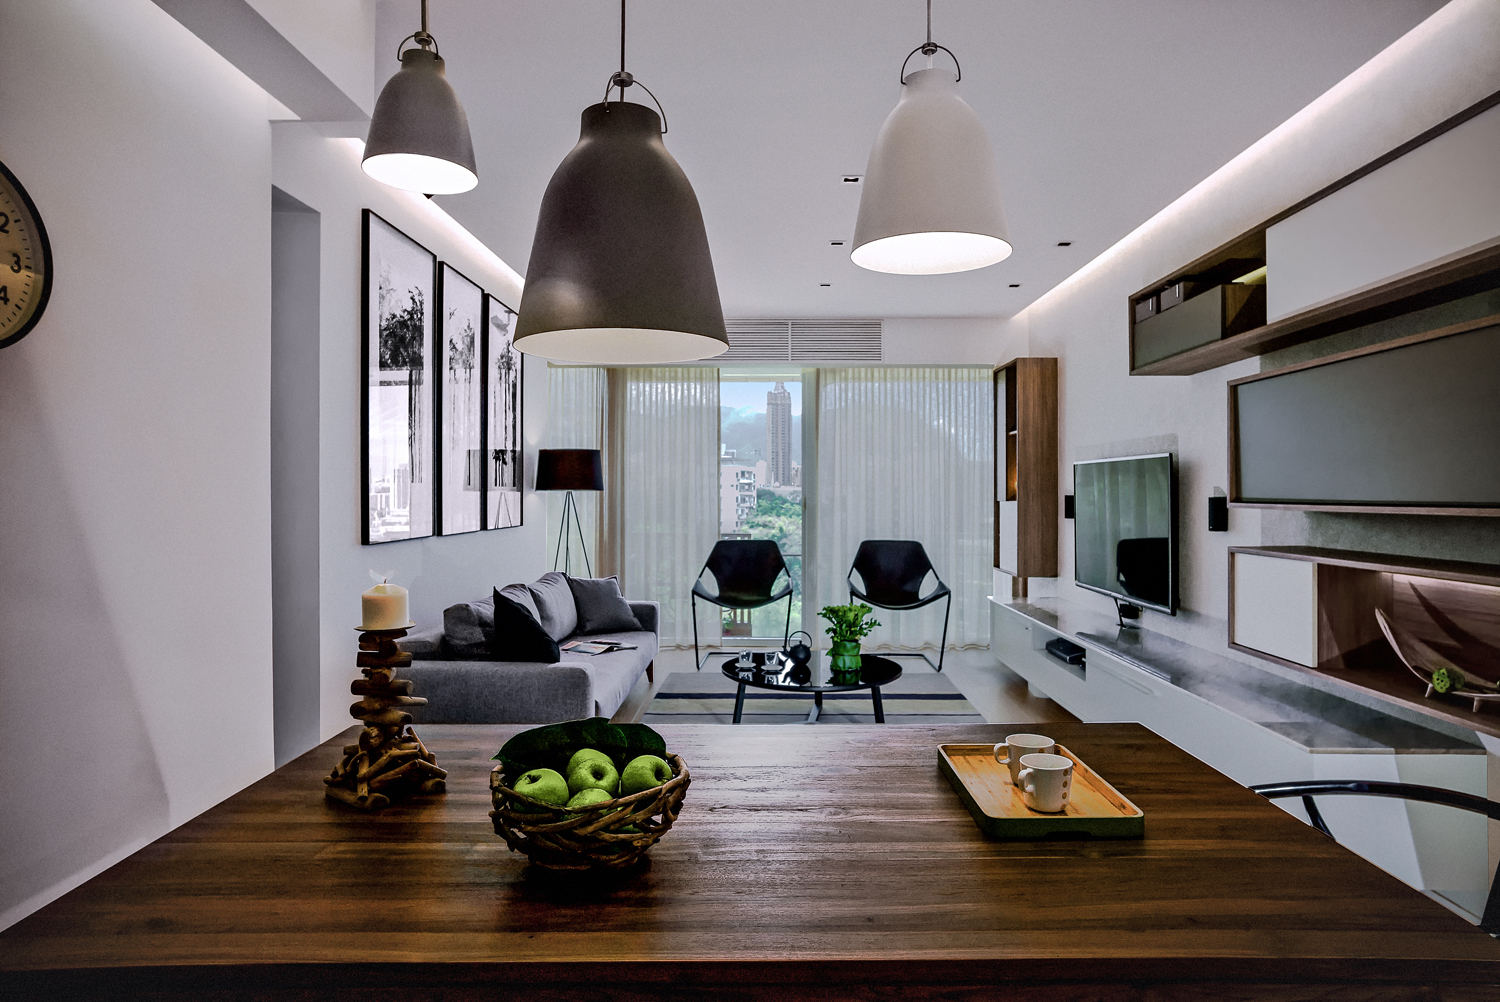 Living Room The Three Caravaggio Pendant Lamps HK2400 To HK6700 Came From Manks 3 F 1 Yip Fat Street Wong Chuk Hang Tel 2522 2115